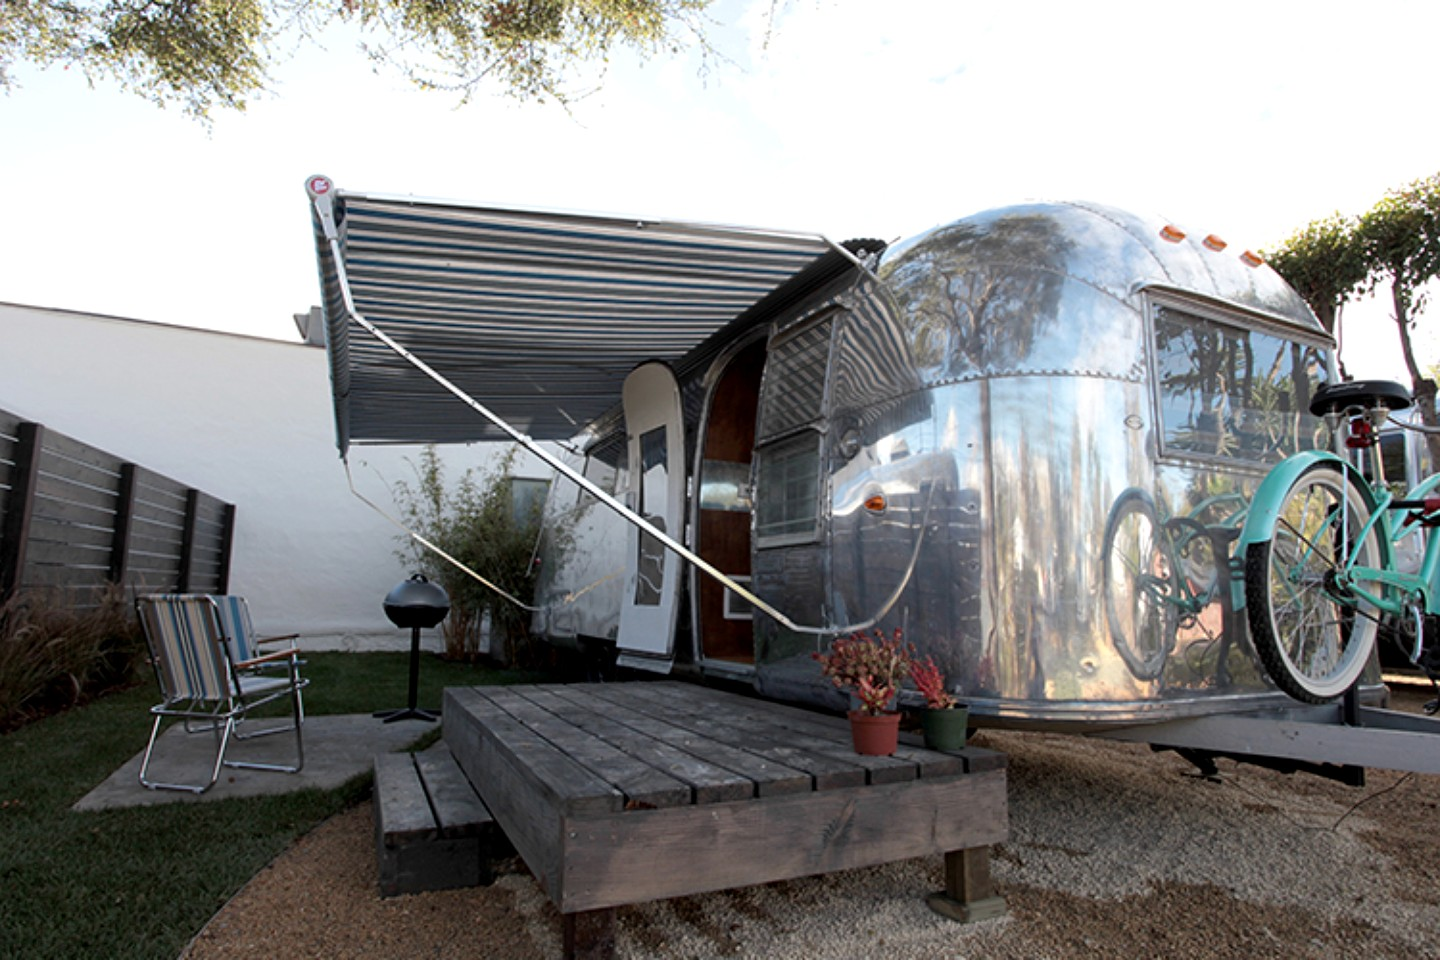 Airstream trailers for rent in santa barbara unique for Airstream rentals santa barbara